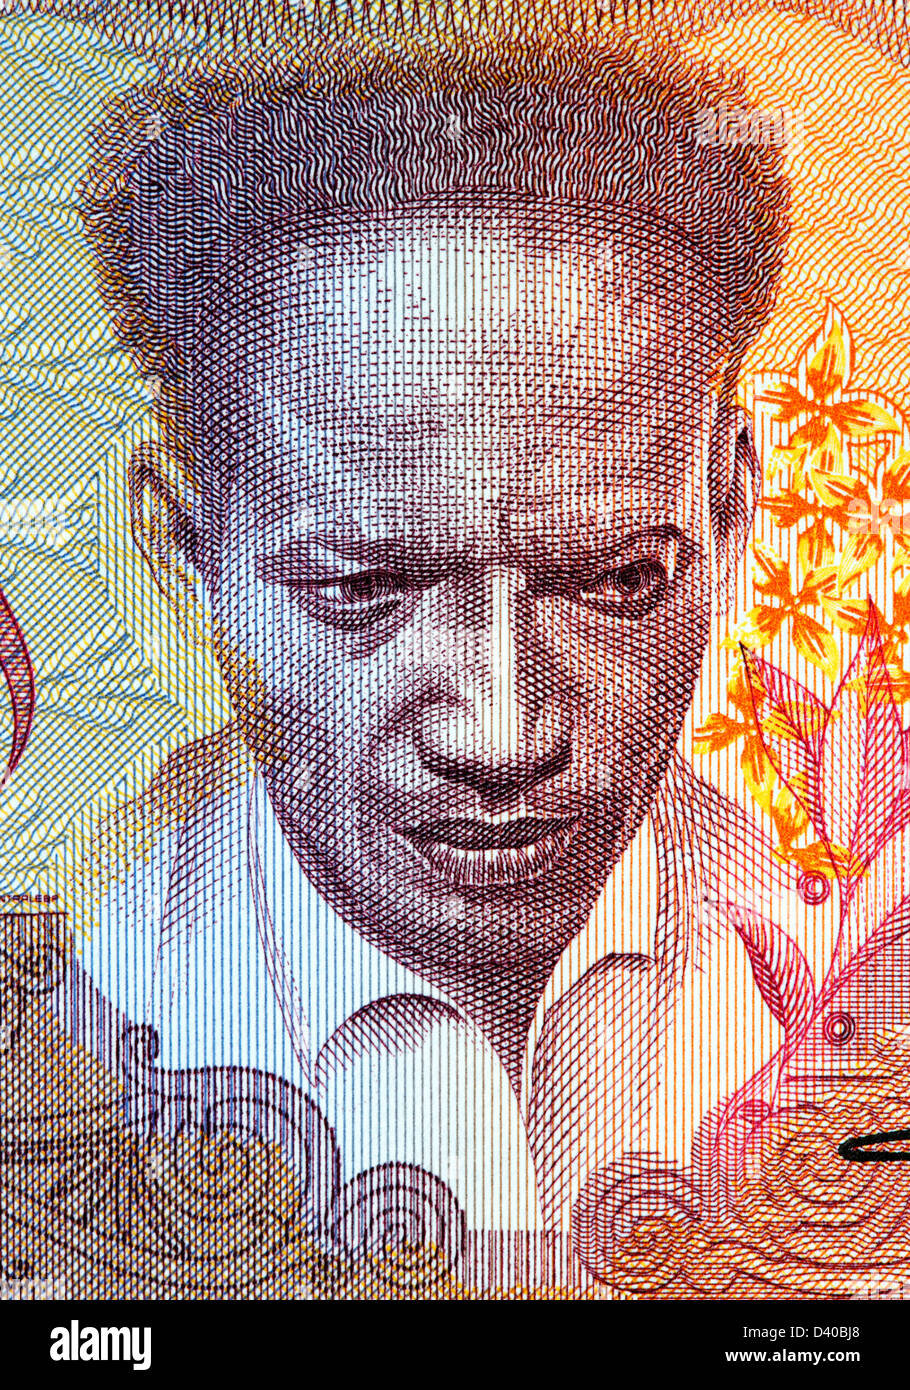 Portrait of Anton De Kom from 100 Gulden banknote, Suriname, 1988 - Stock Image